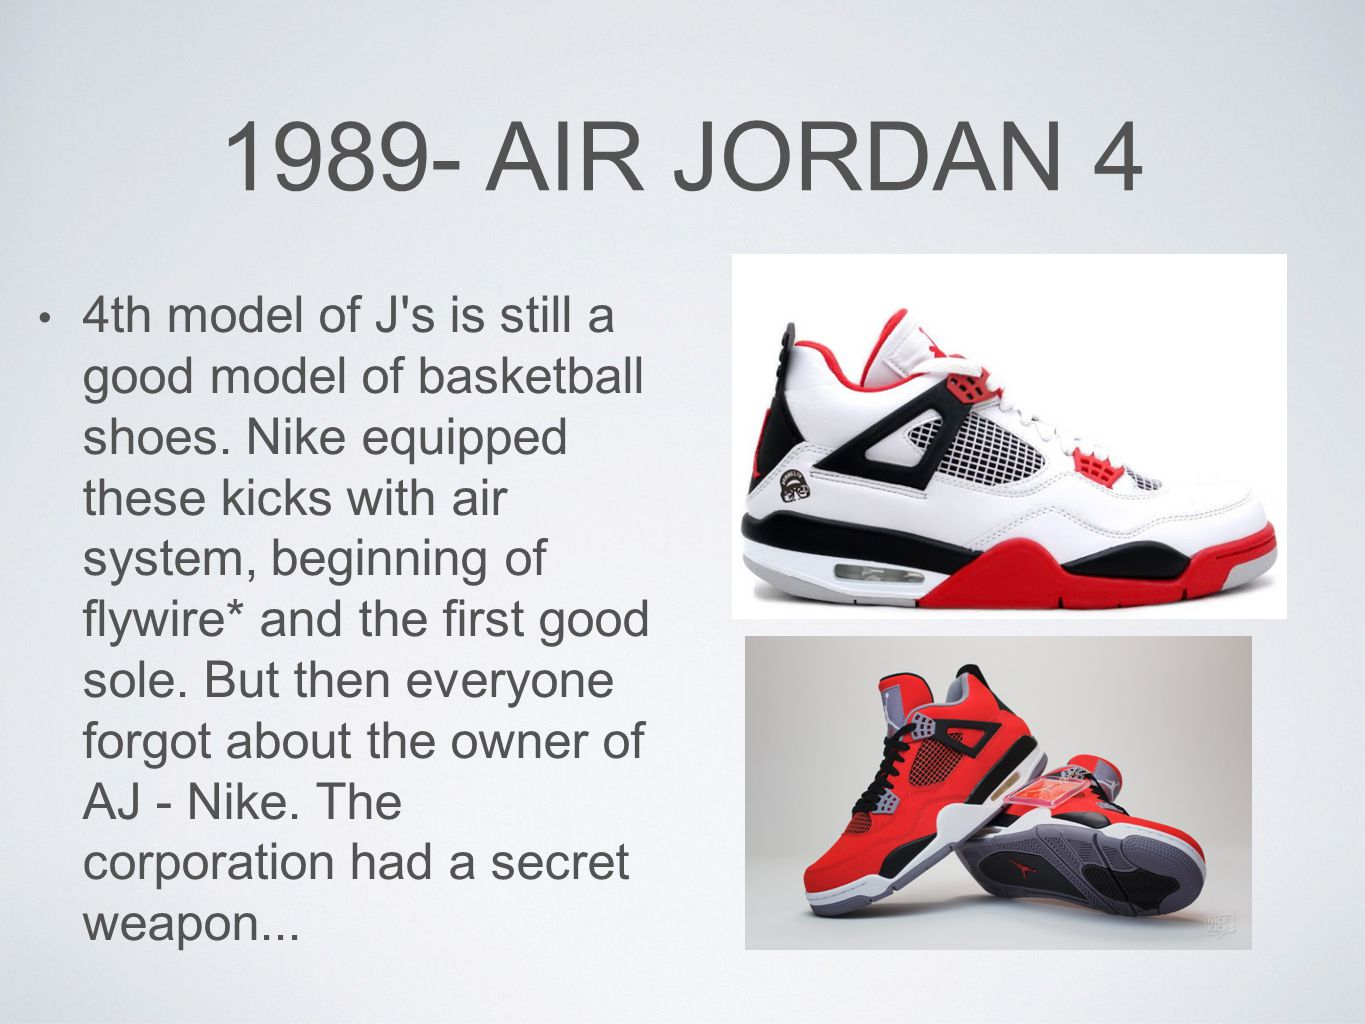 1989- AIR JORDAN 4 4th model of J s is still a good model of basketball shoes.